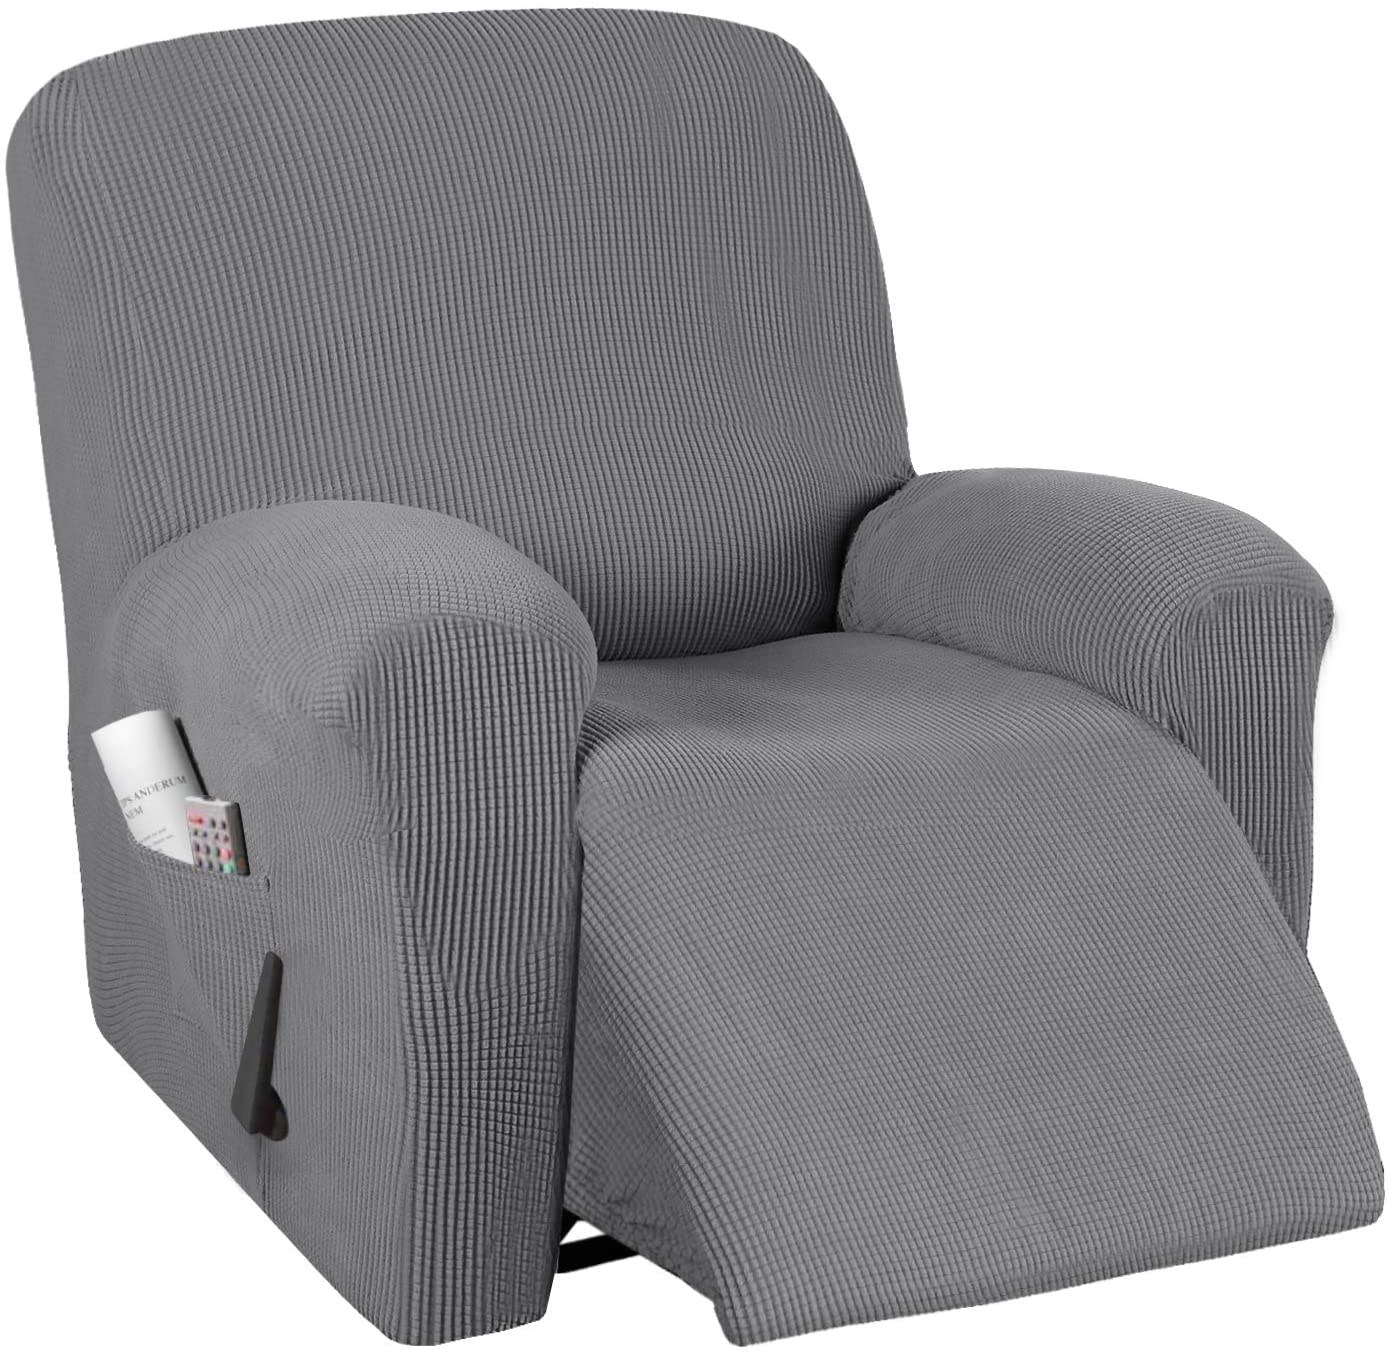 Stretch Recliner Cover Recliner Chair Covers for Leather / Living Room Recliner Chair Slipcover with Side Pocket, Thick Soft Small Checked Jacquard, Fitted Standard / Oversized 24